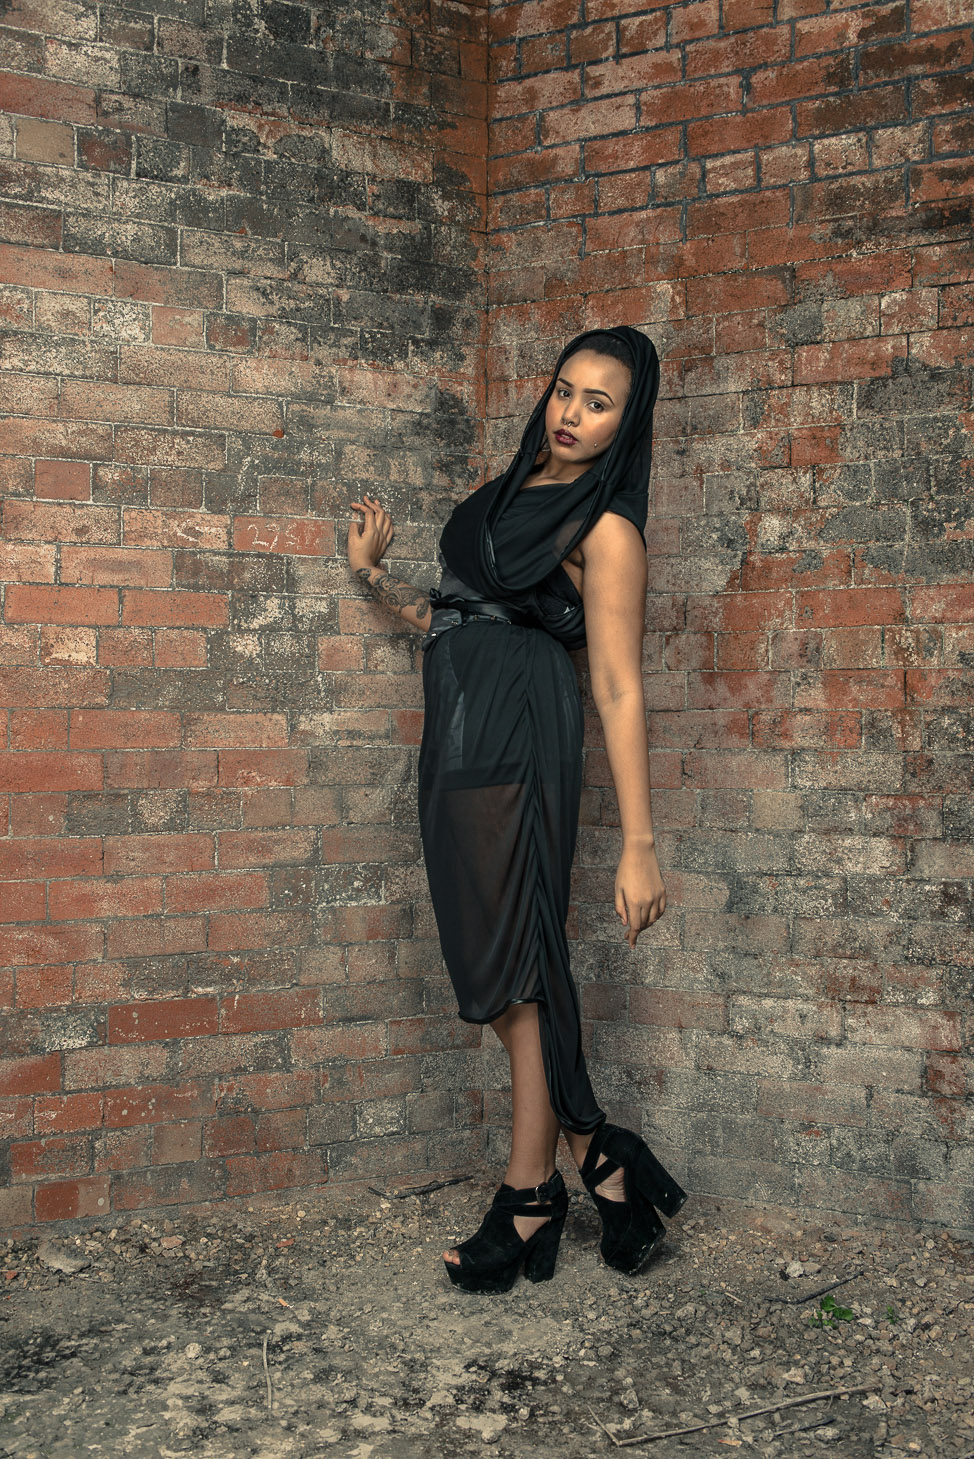 zaramia-ava-zaramiaava-leeds-fashion-designer-ethical-sustainable-tailored-minimalist-sheer-versatile-drape-dress-black-hood-binding-belt-wrap-cowl-styling-bodysuit-womenswear-models-photoshoot-6